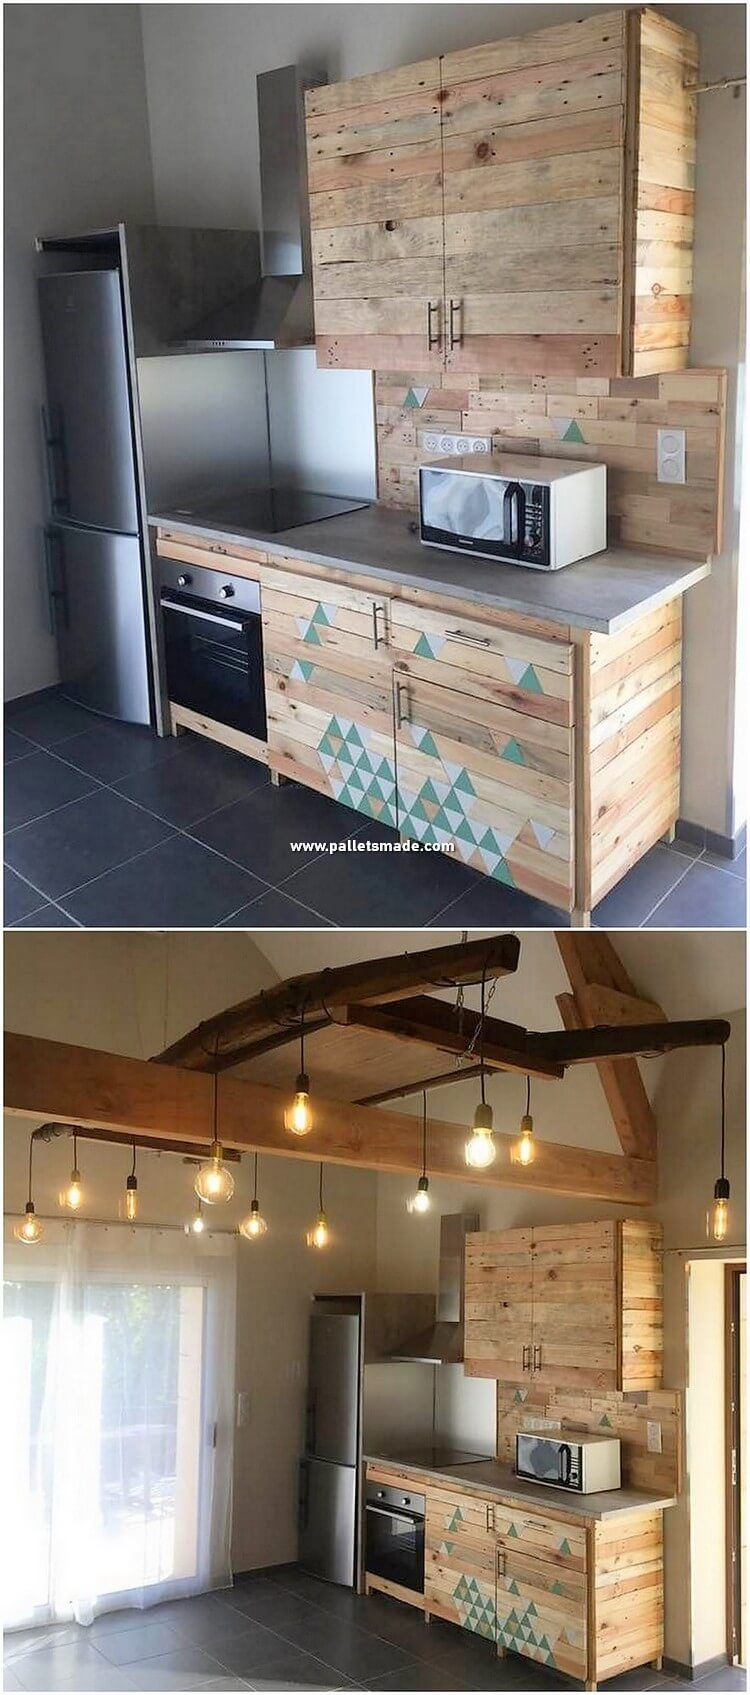 Kitchen Cabinets Are Always One Of The Favorite Ideas In The Houses That Are Settled With The Kitchen Beaut Pallet Kitchen Pallet House Pallet Kitchen Cabinets